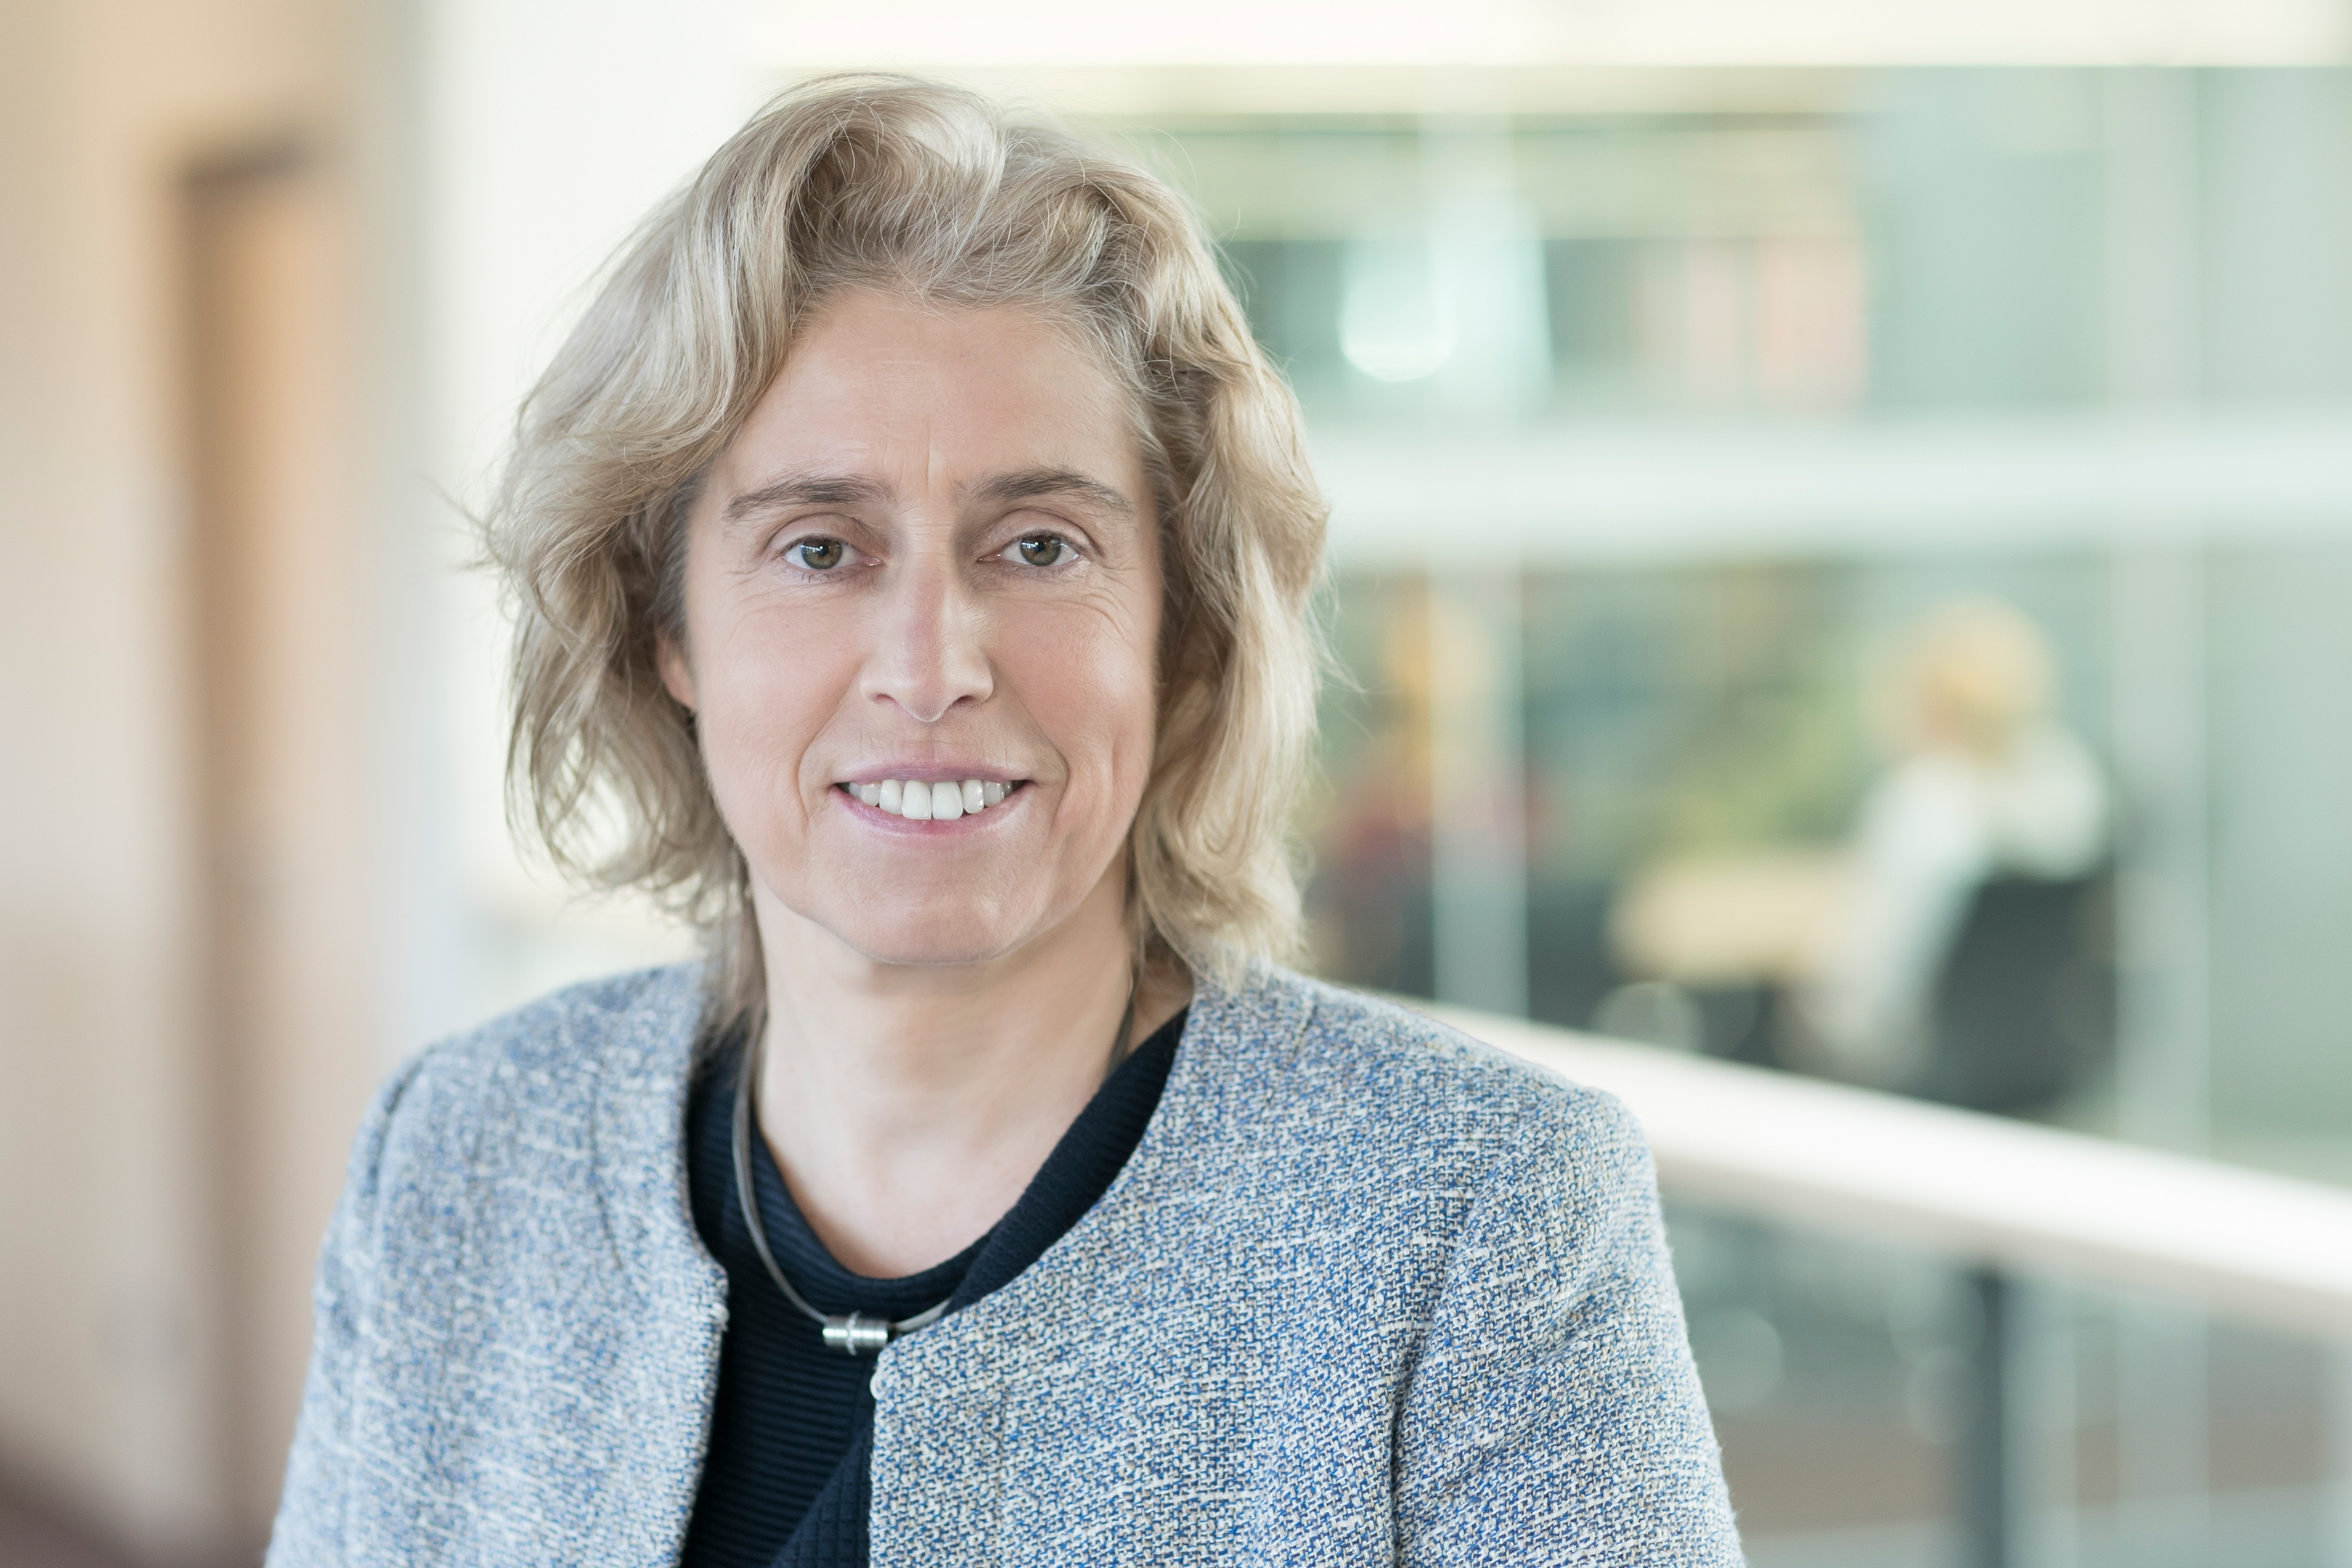 Dr. Doris Höpke; Member of the Board of Management